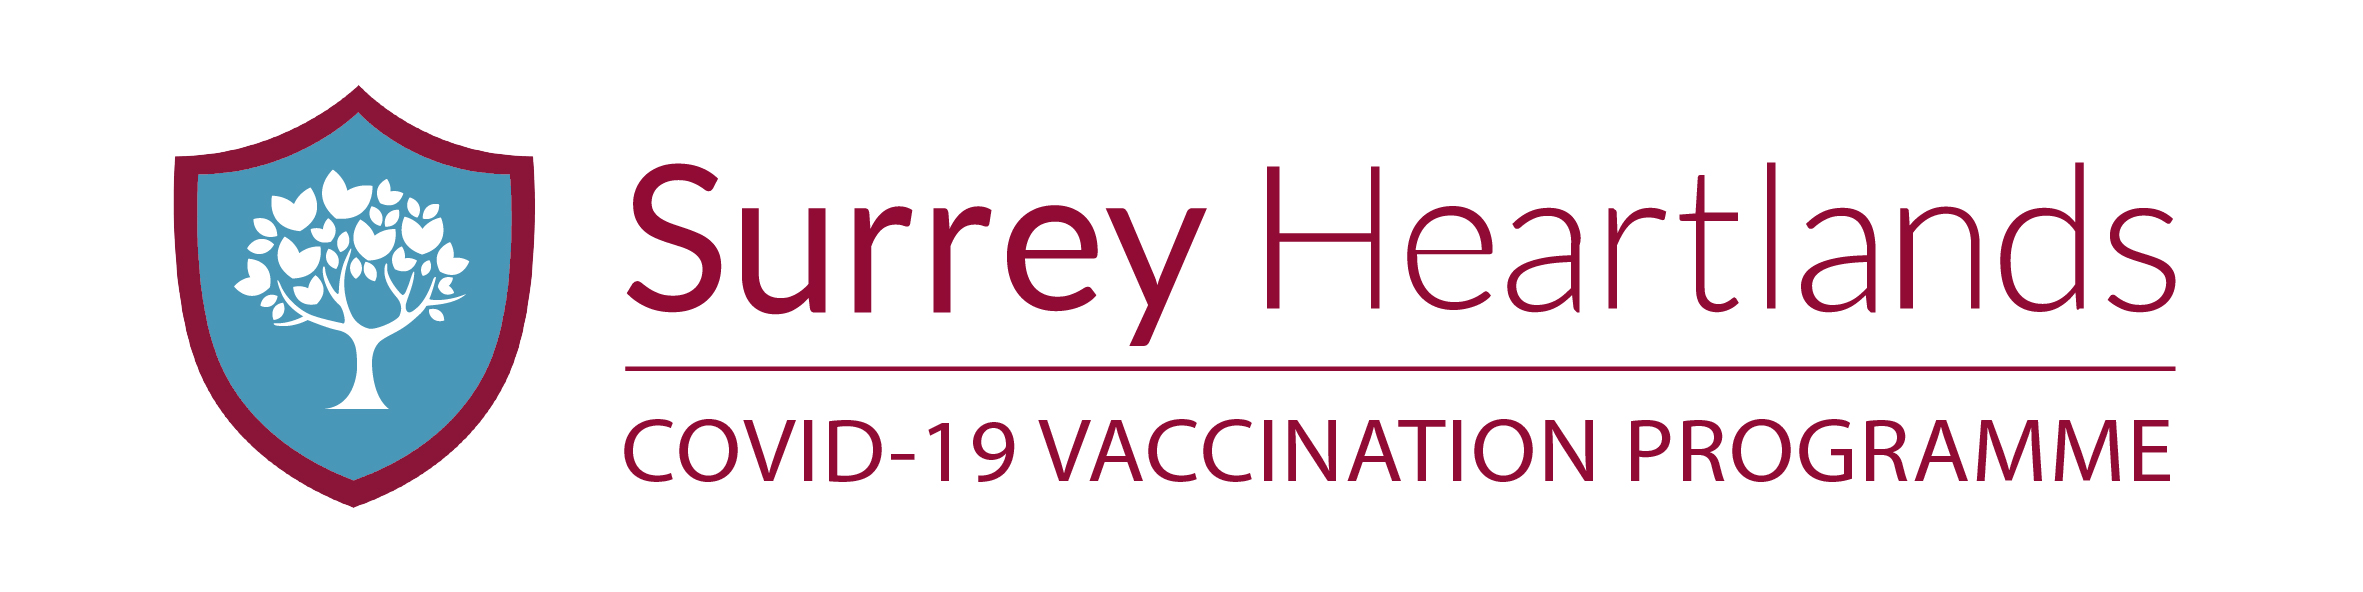 Surrey Heartlands Covid-19 Vaccination Programme Logo